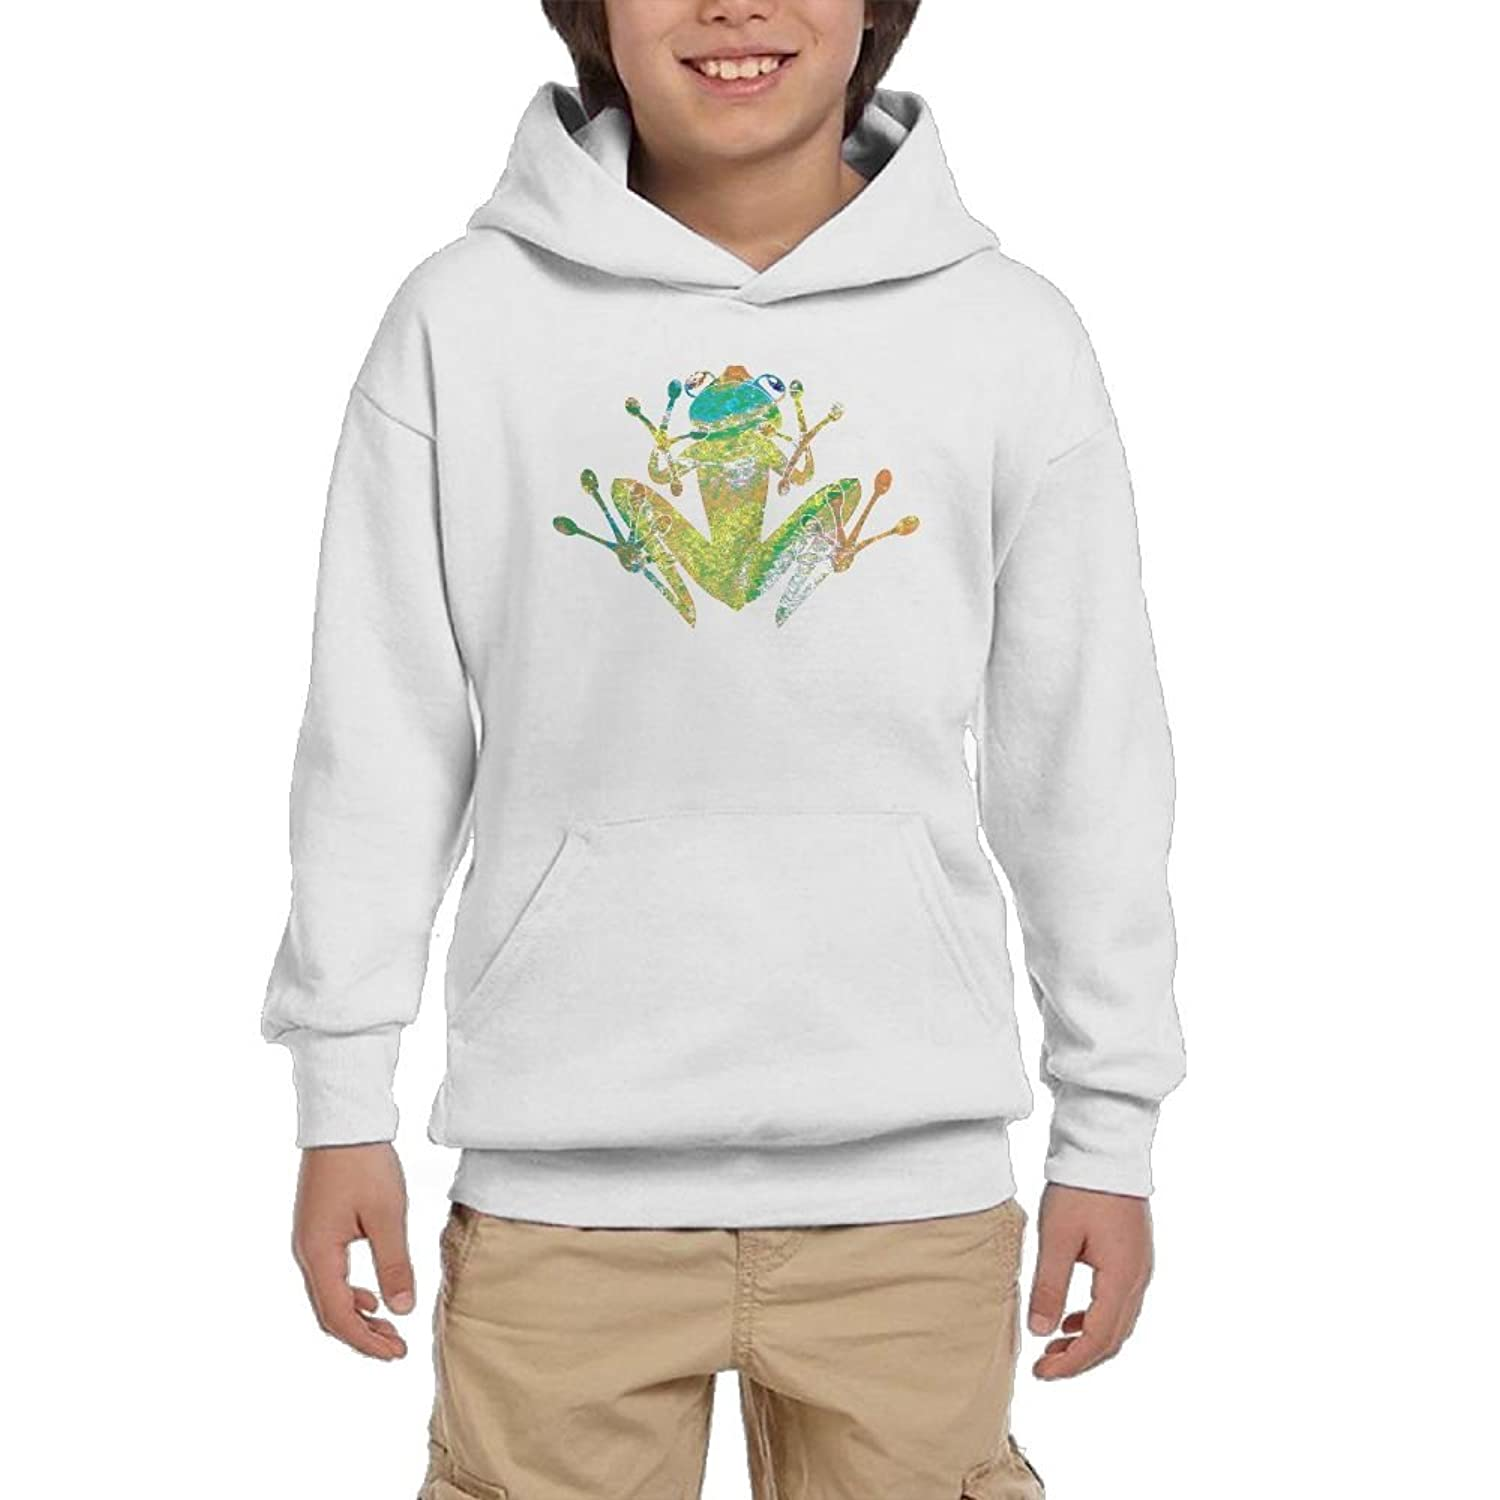 cheap Tie Dye Heart Tree Frog Boy Cotton Hoodie Youth Cool Hoodie save more